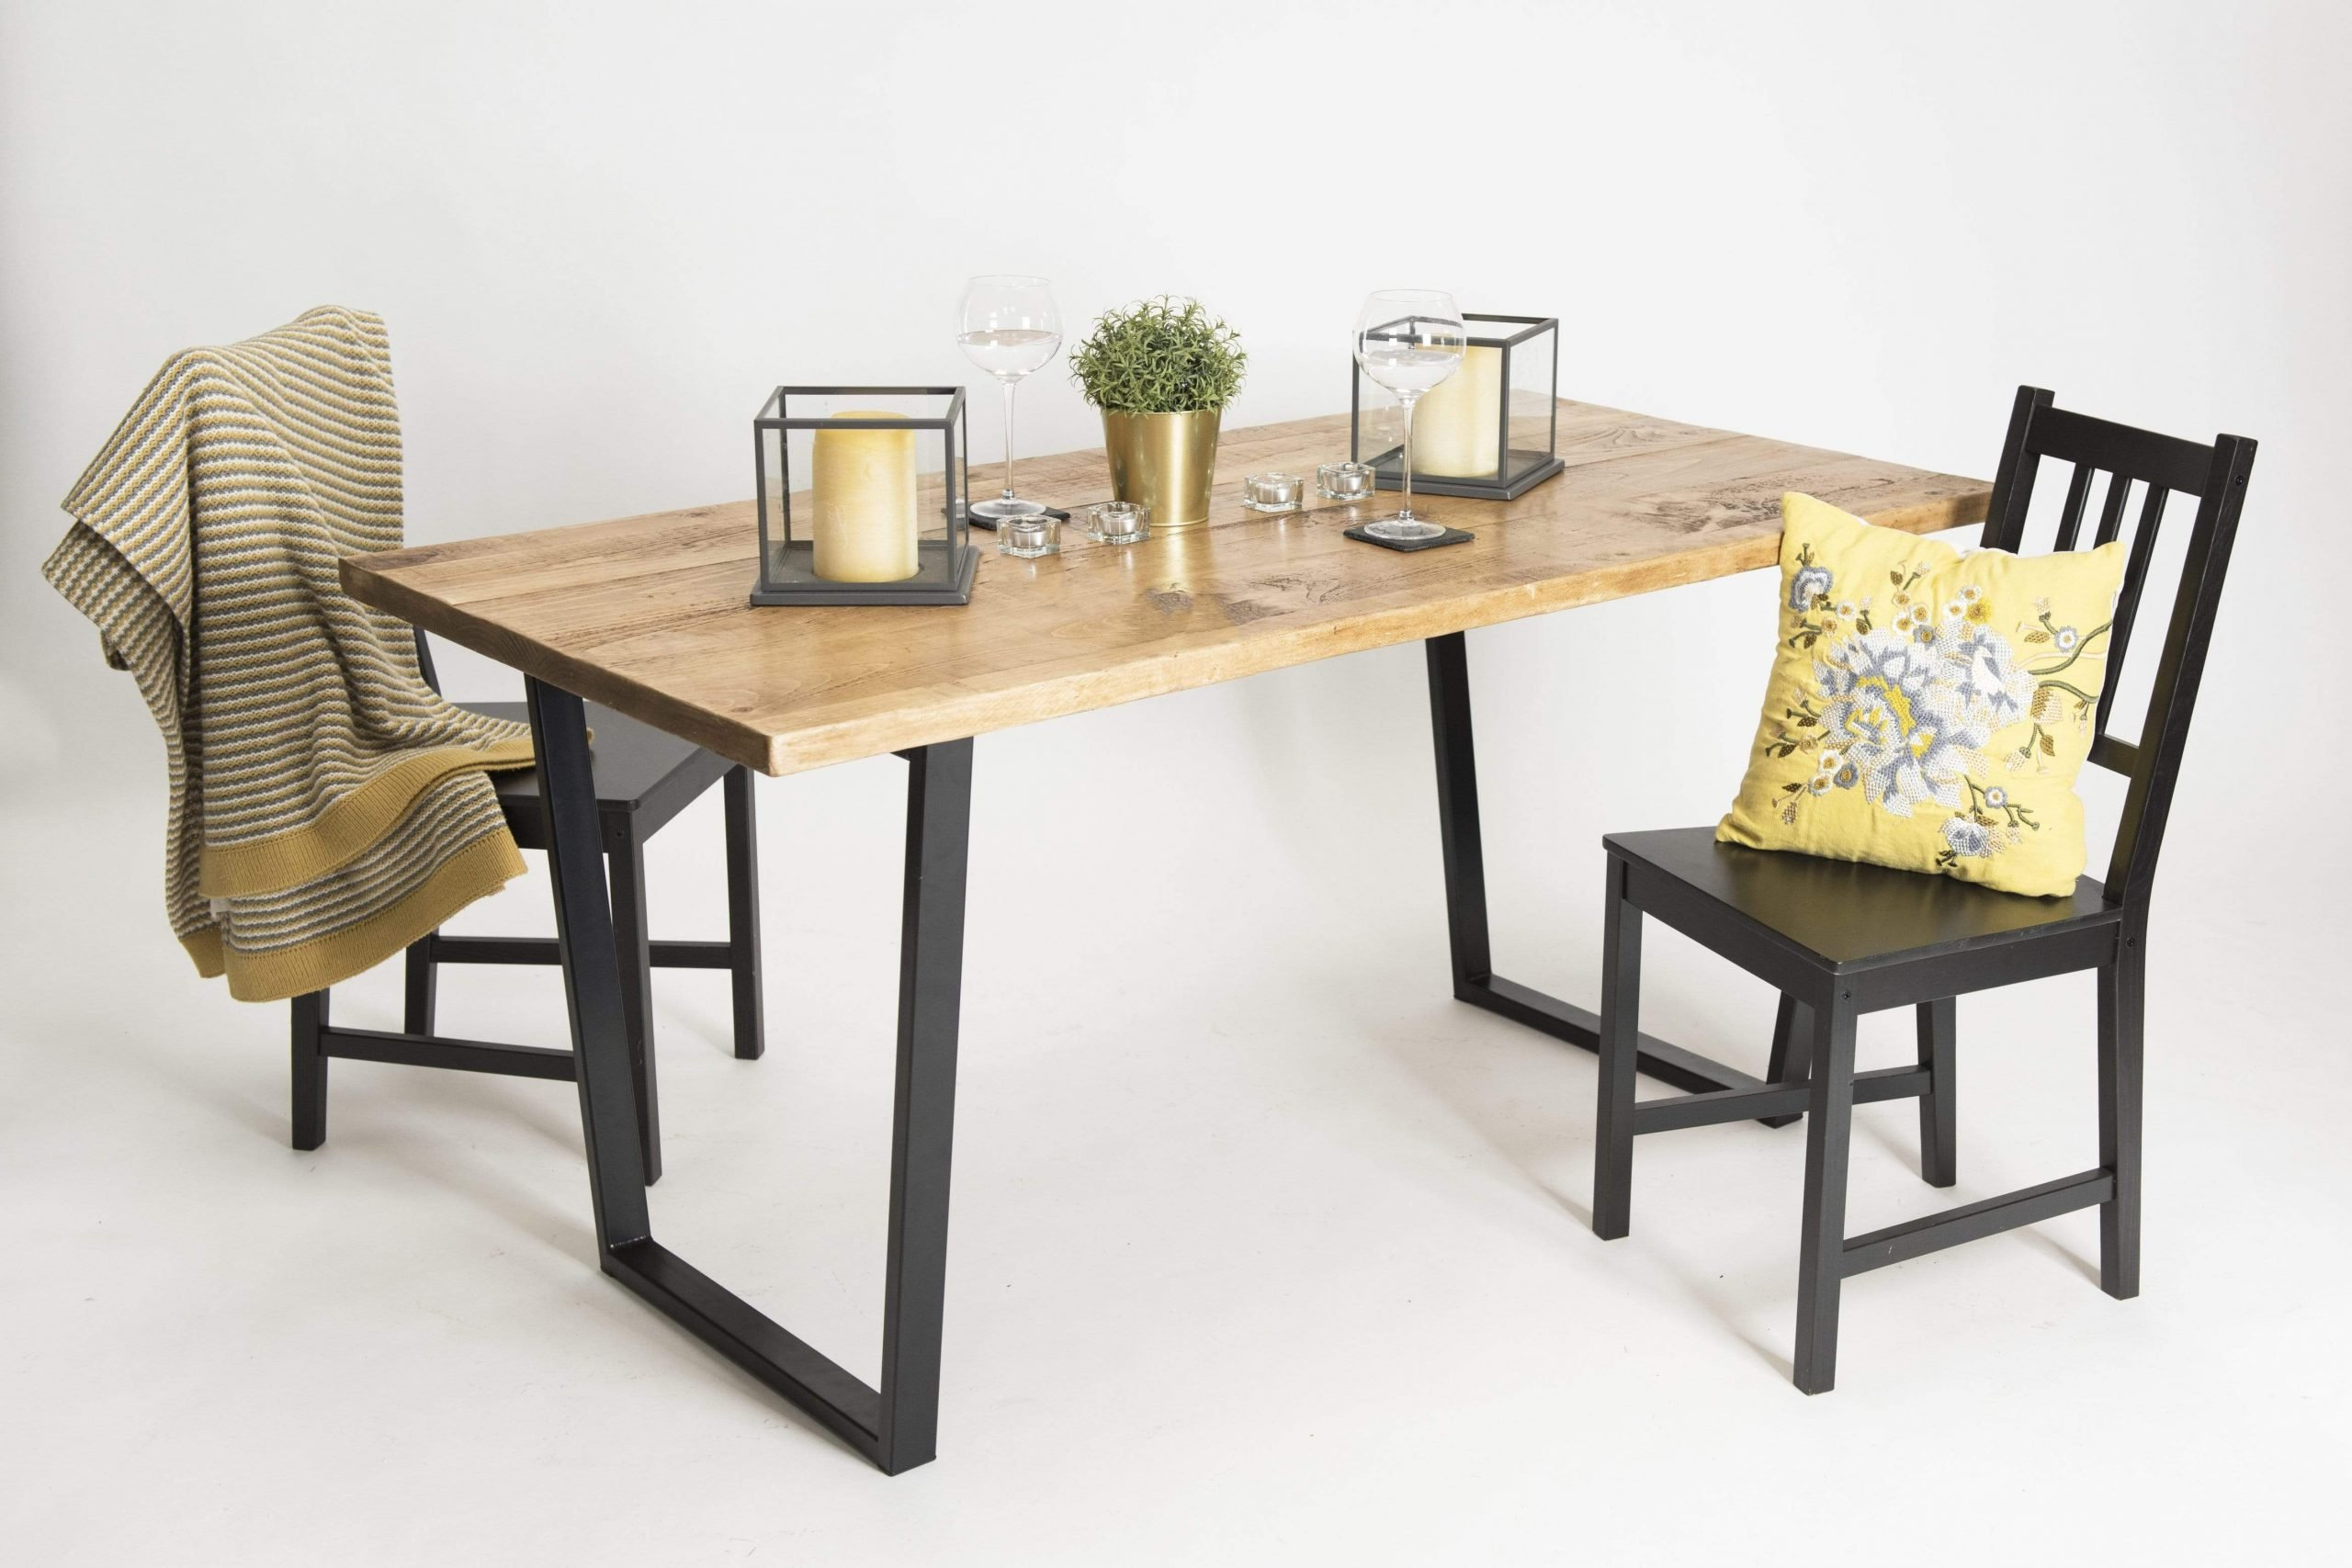 Picture of: Extendable Industrial Dining Table Trapezium Grain Frame